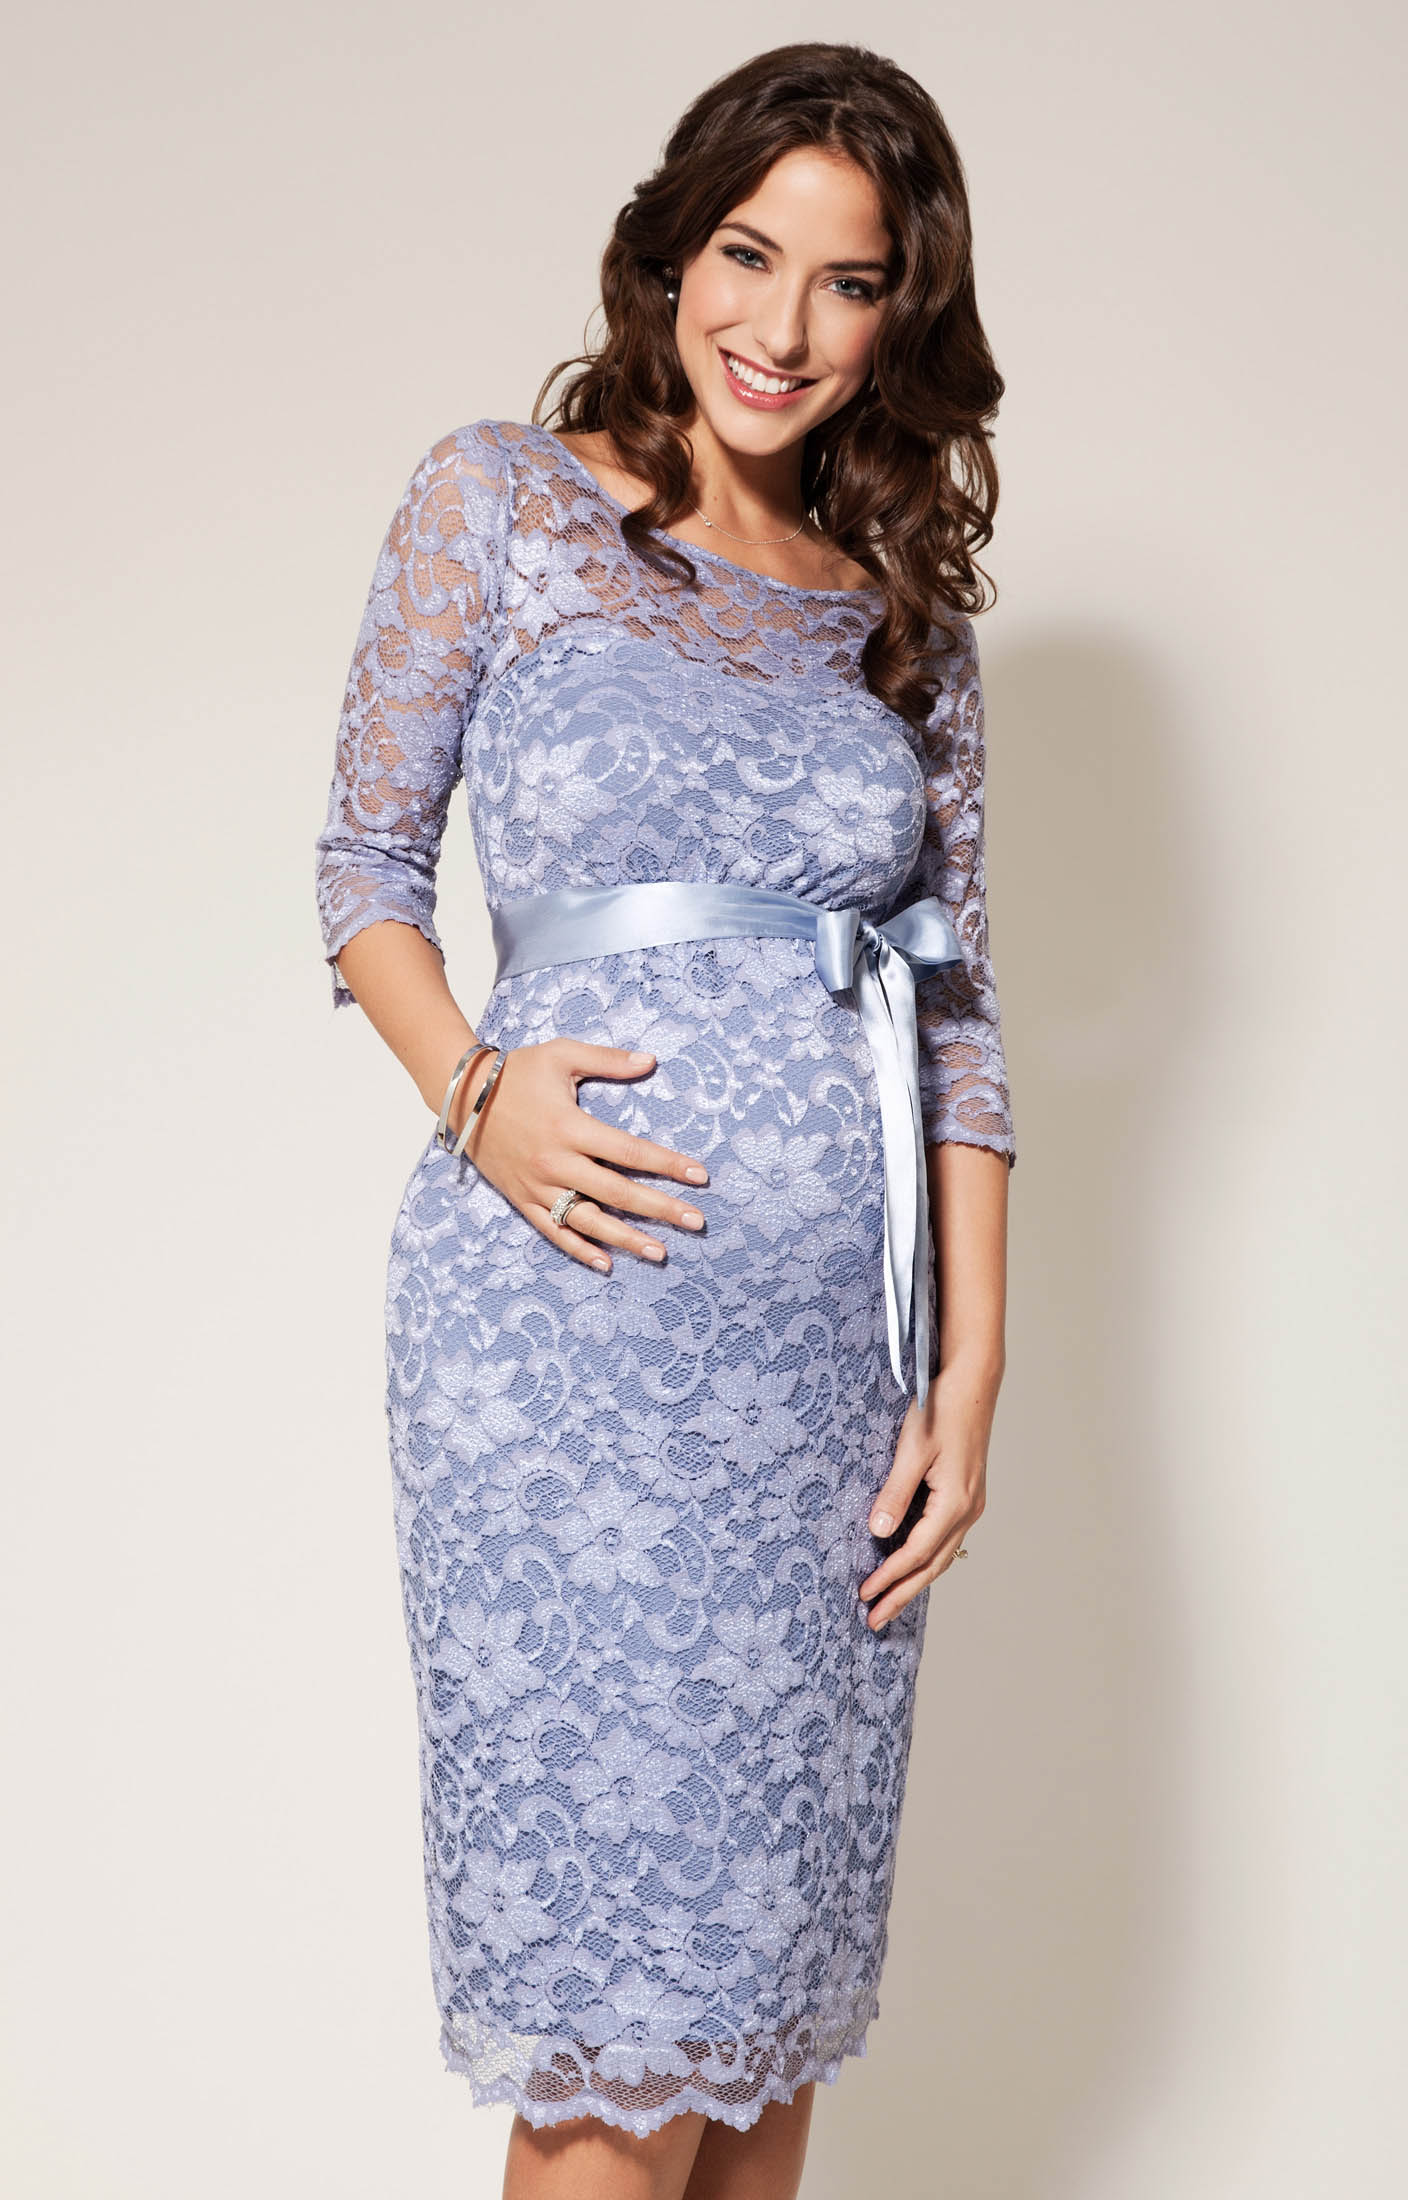 Maternity Evening Dresses & Formal Gowns - Plus Size Women Fashion